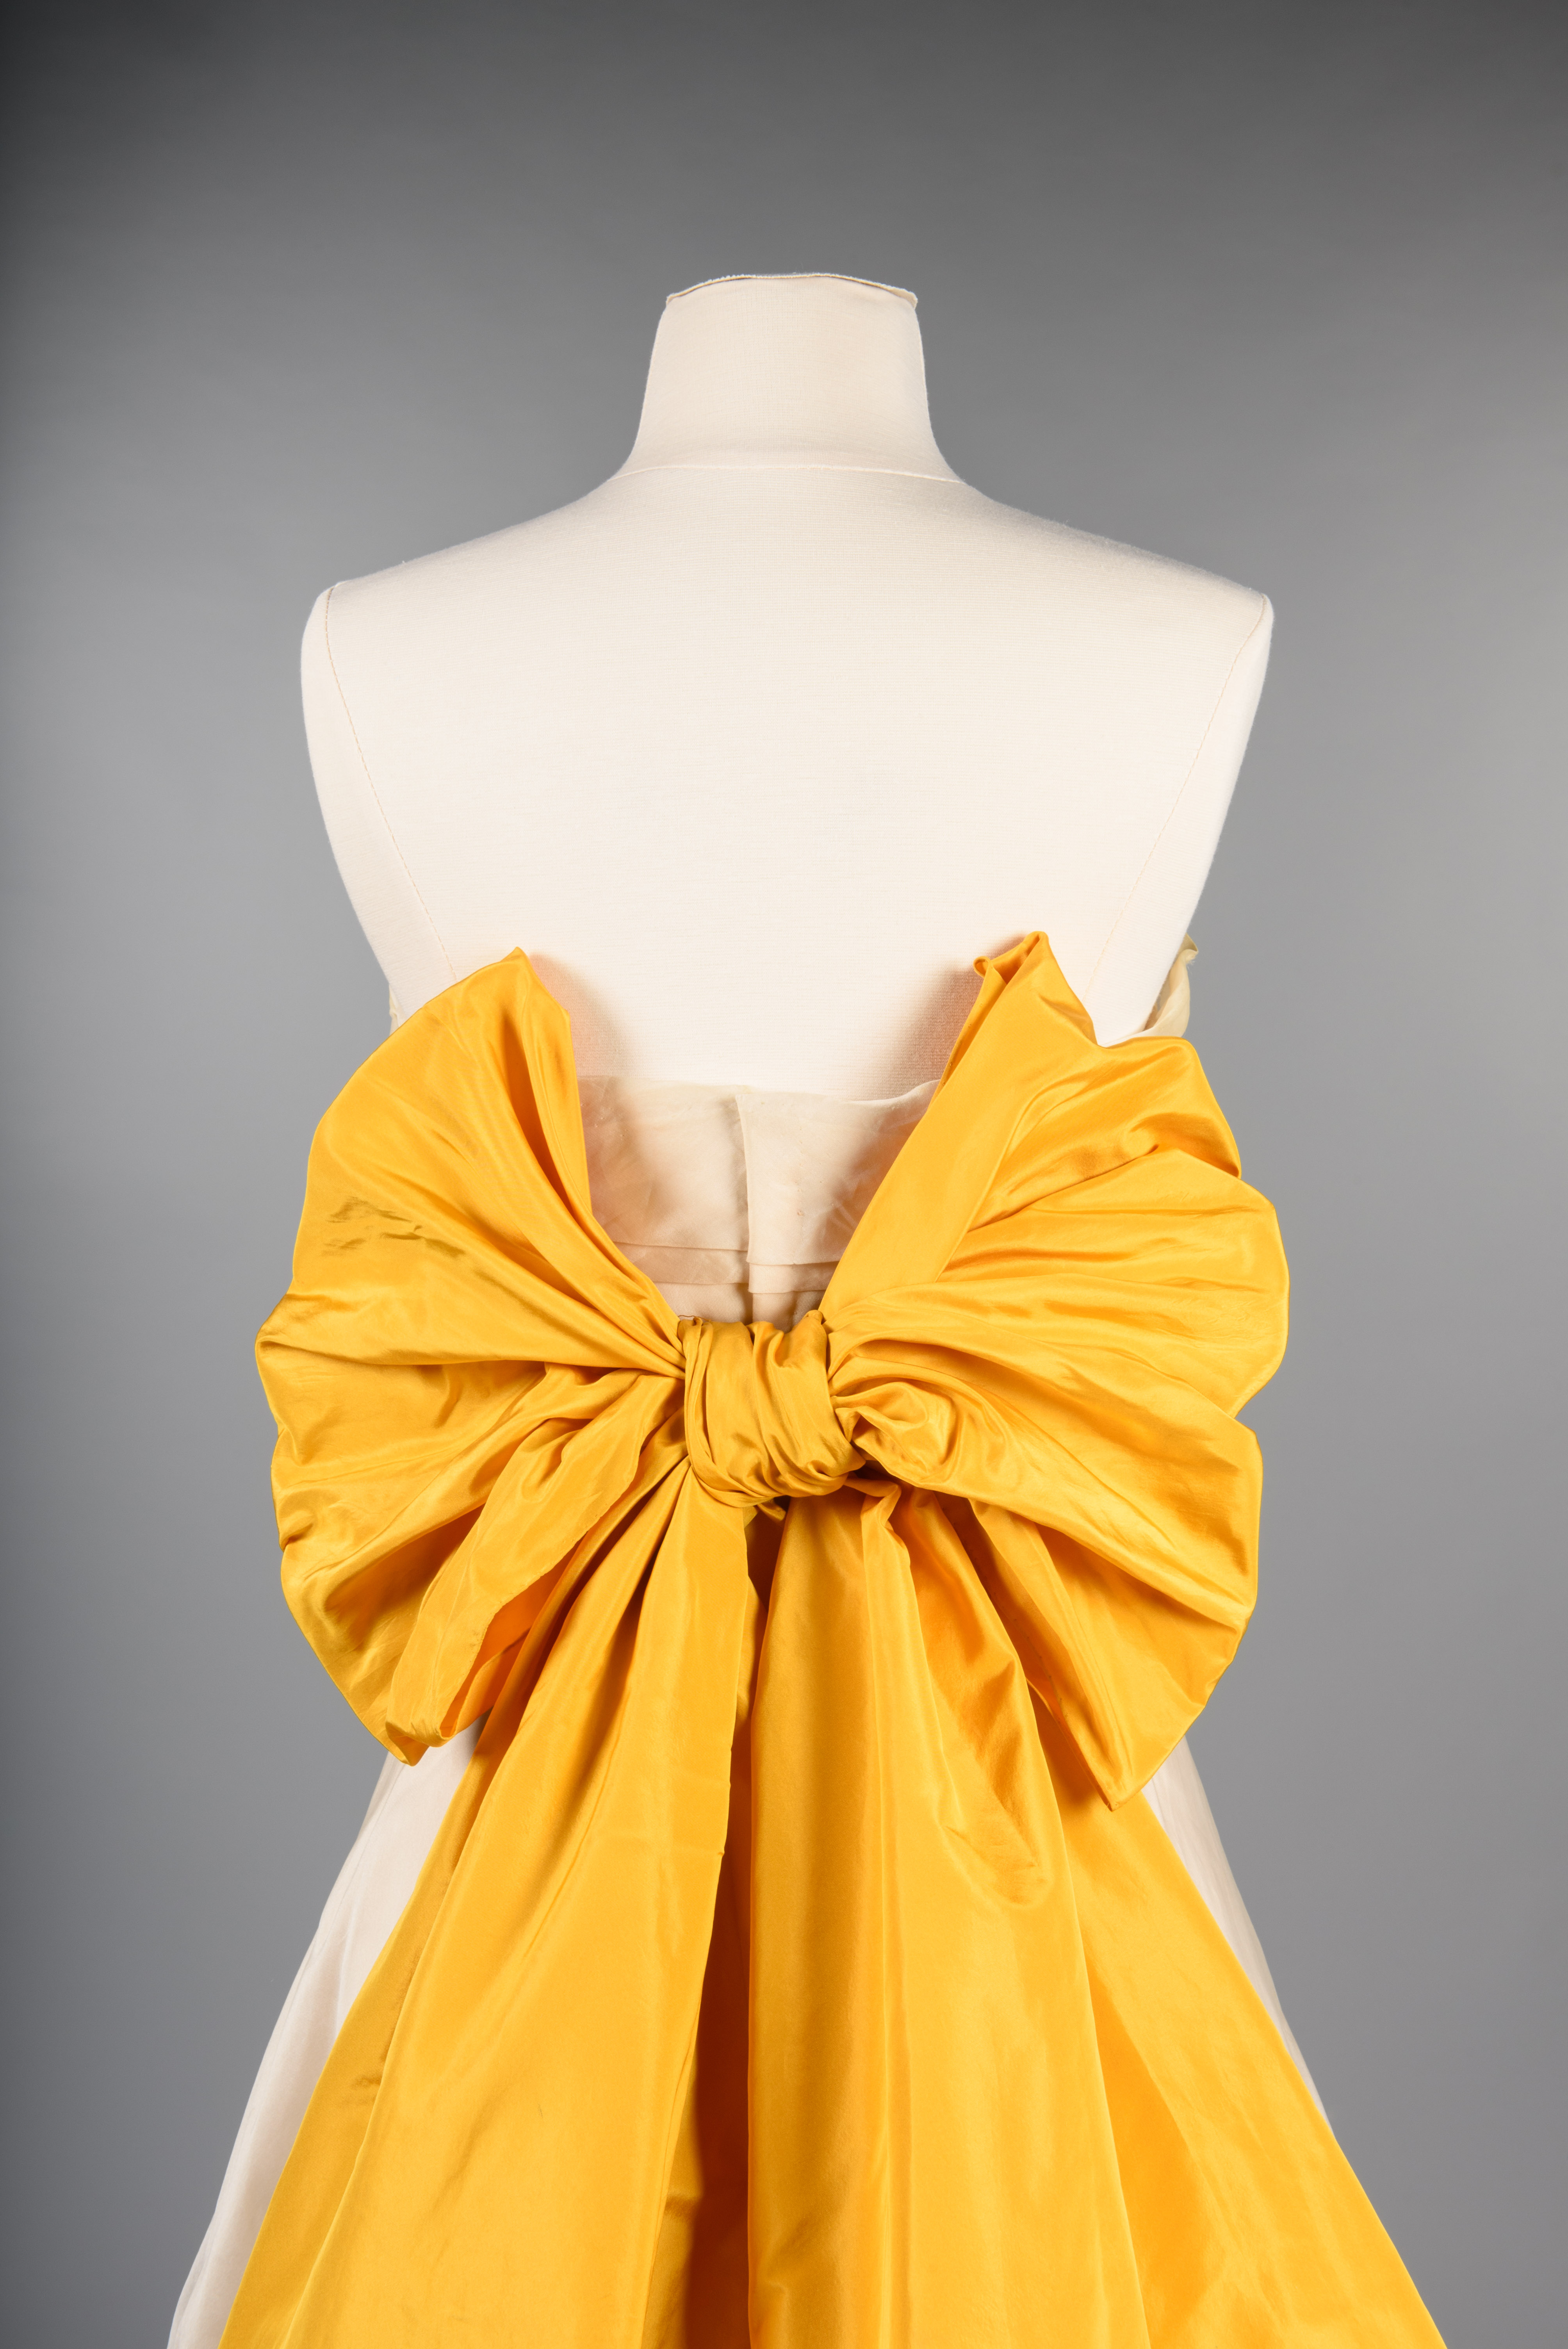 Evening gown with taffeta bow, about 1955, Irene, Los Angeles, maker Frederick & Nelson, retailer. Gift of Mrs. C. Winkler copyright MOHAI Collection.{ }